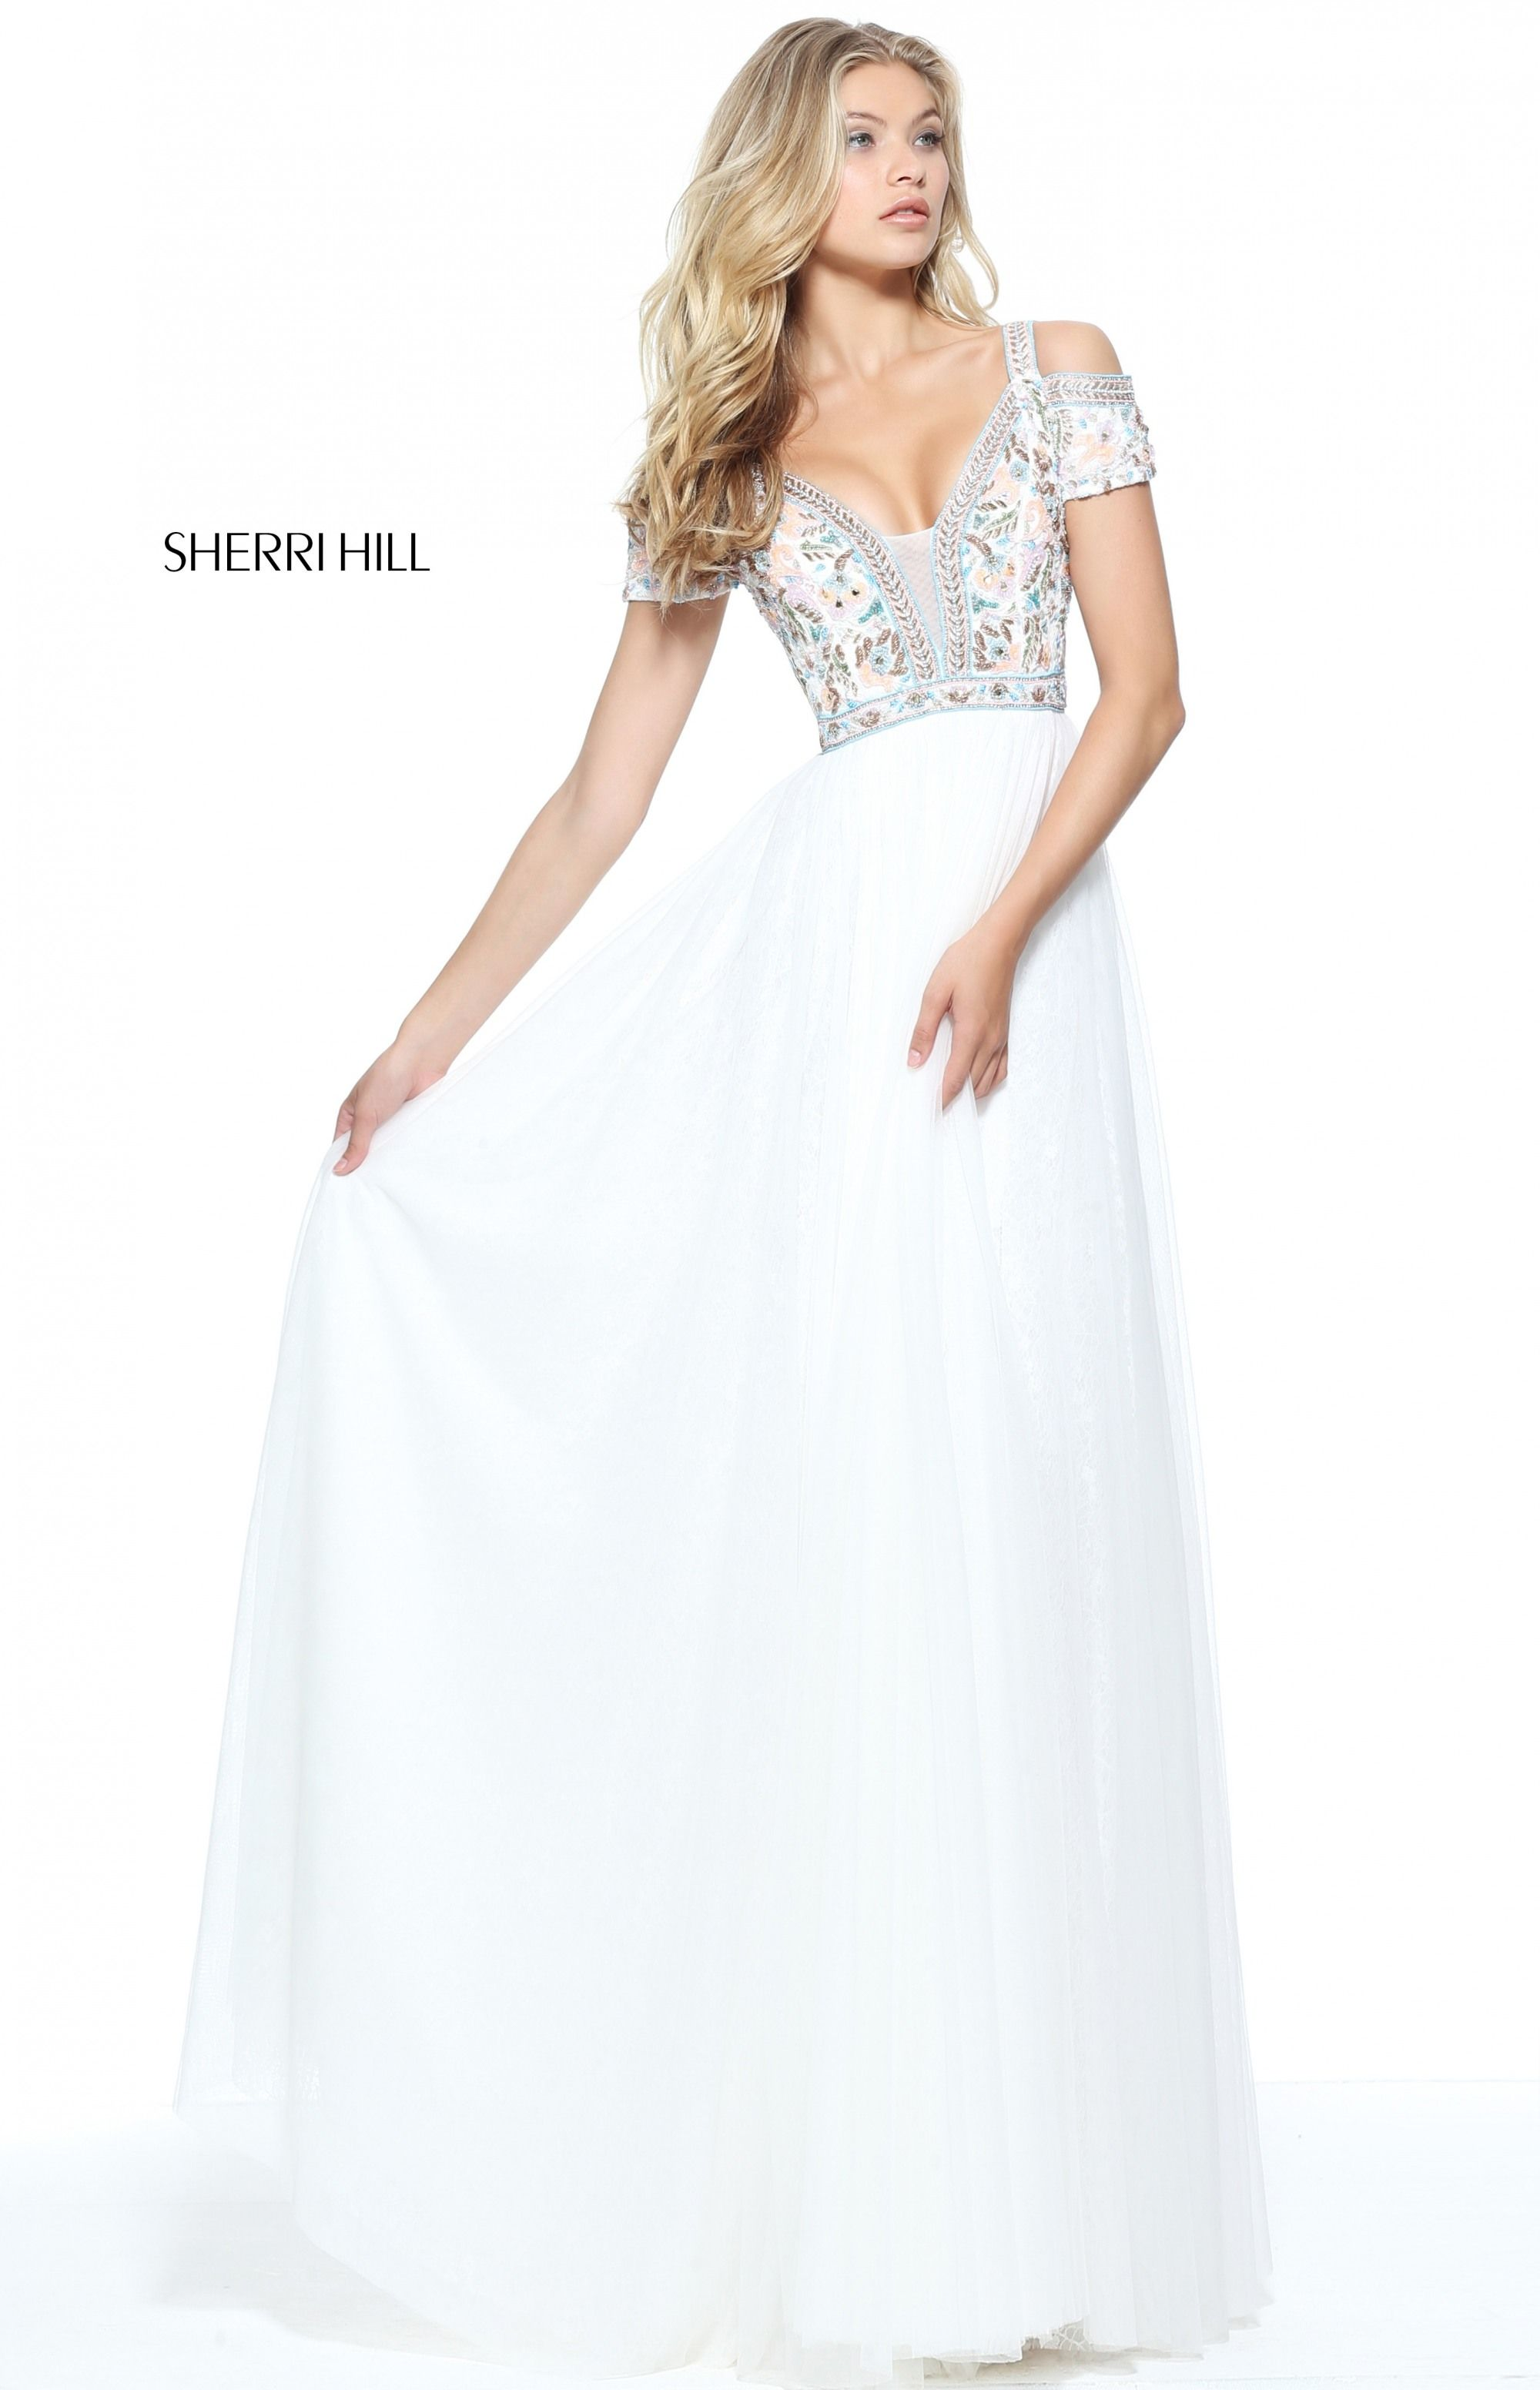 Sherri hill international prom association things to wear